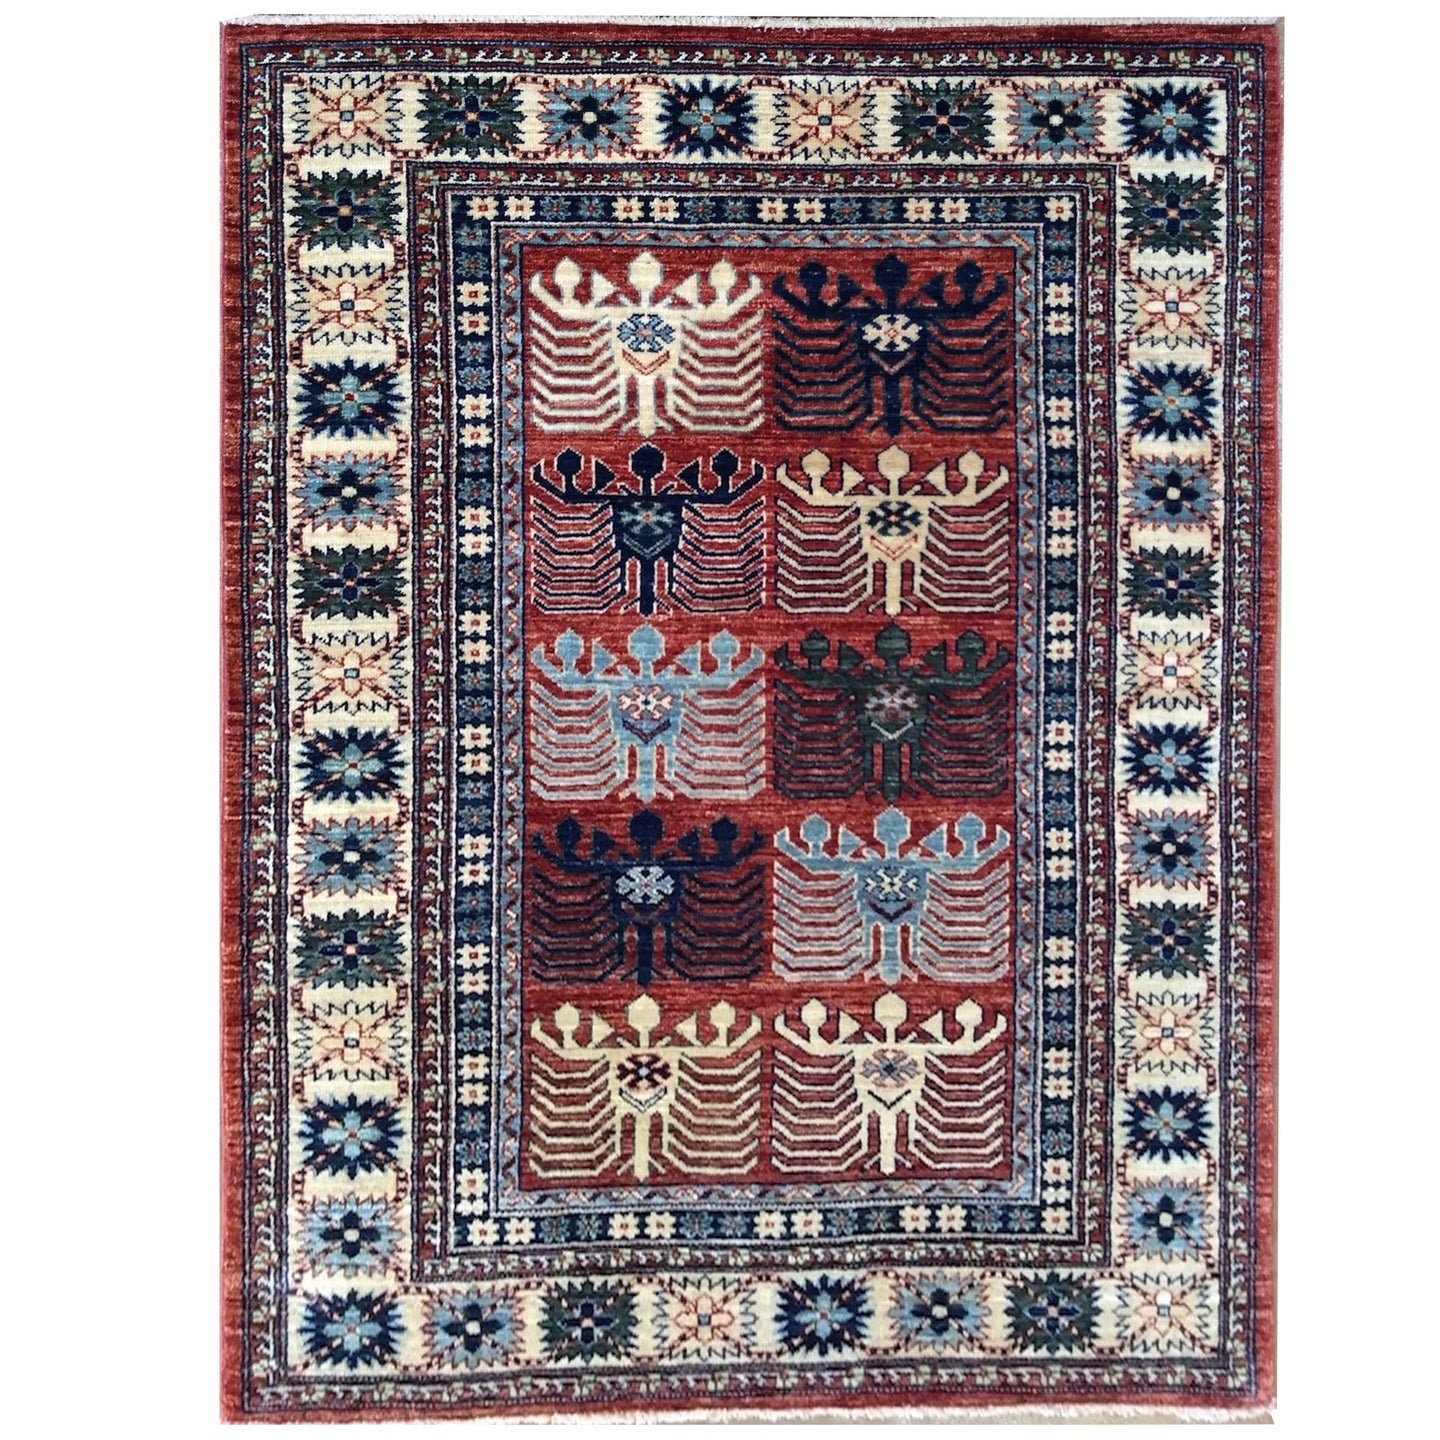 Oriental rugs, hand-knotted carpets, sustainable rugs, classic world oriental rugs, handmade, United States, interior design,  Brrsf-651